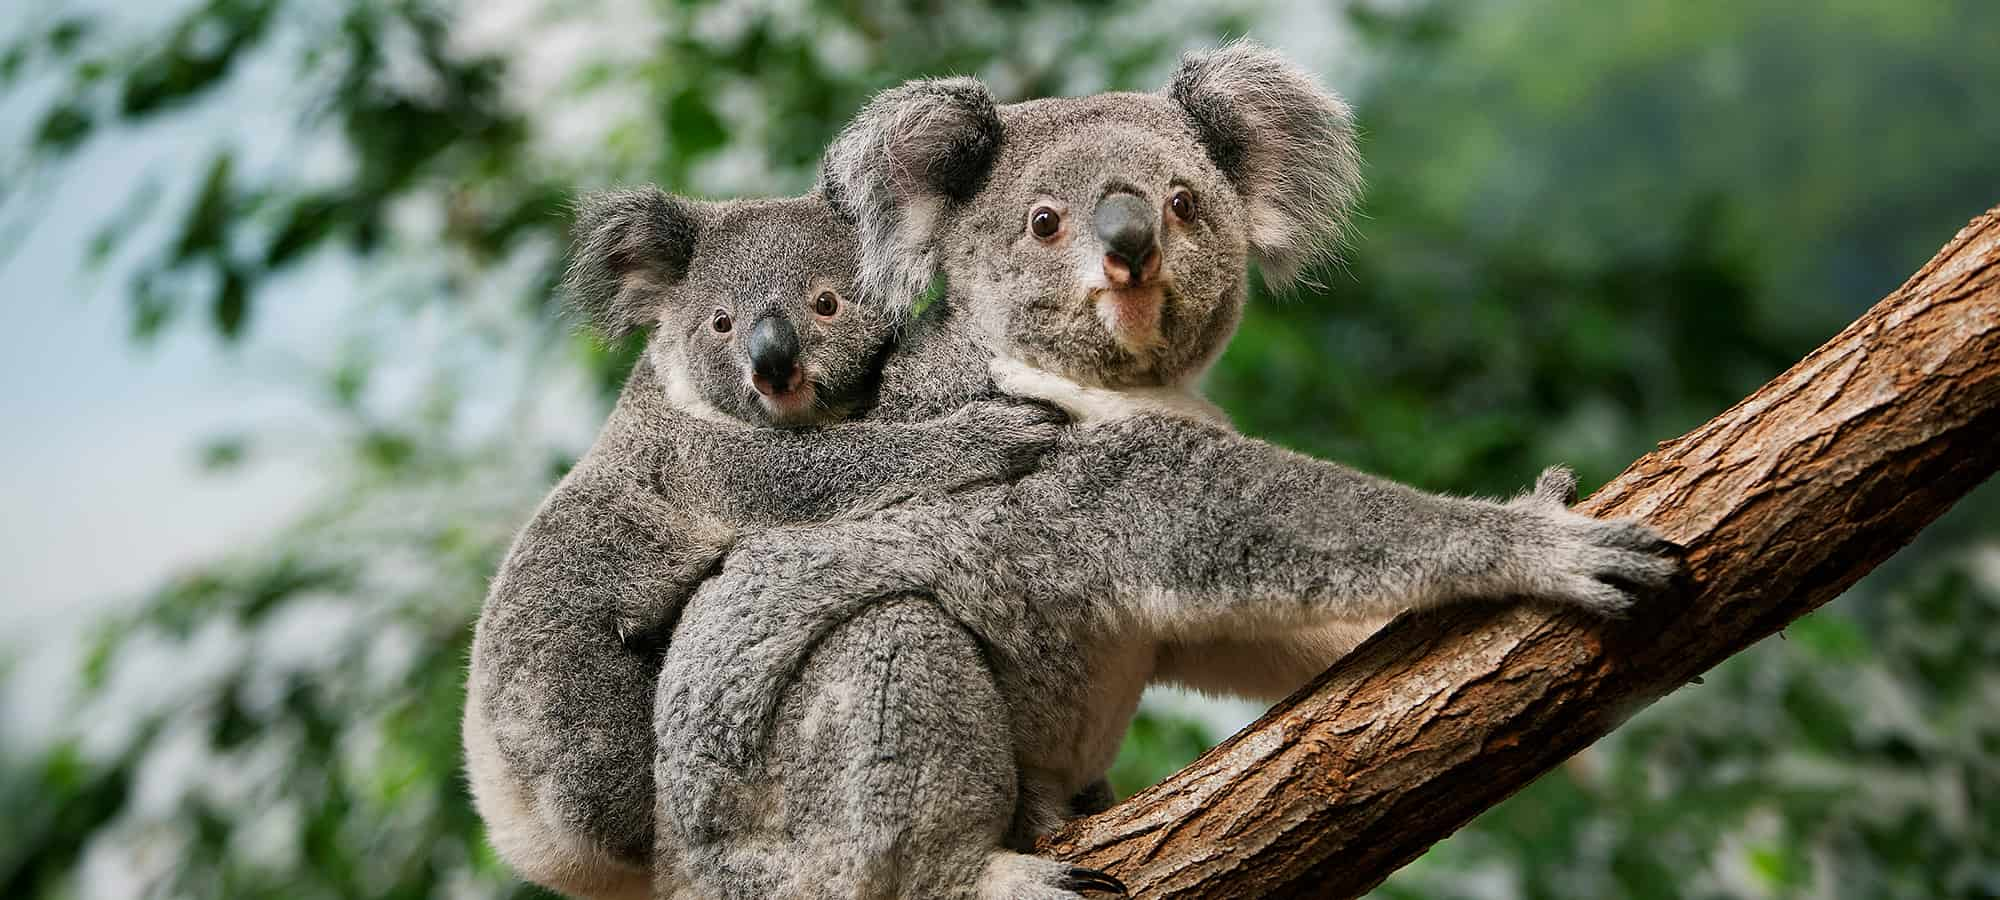 6 Ways to Experience the Flora and Fauna in Cairns